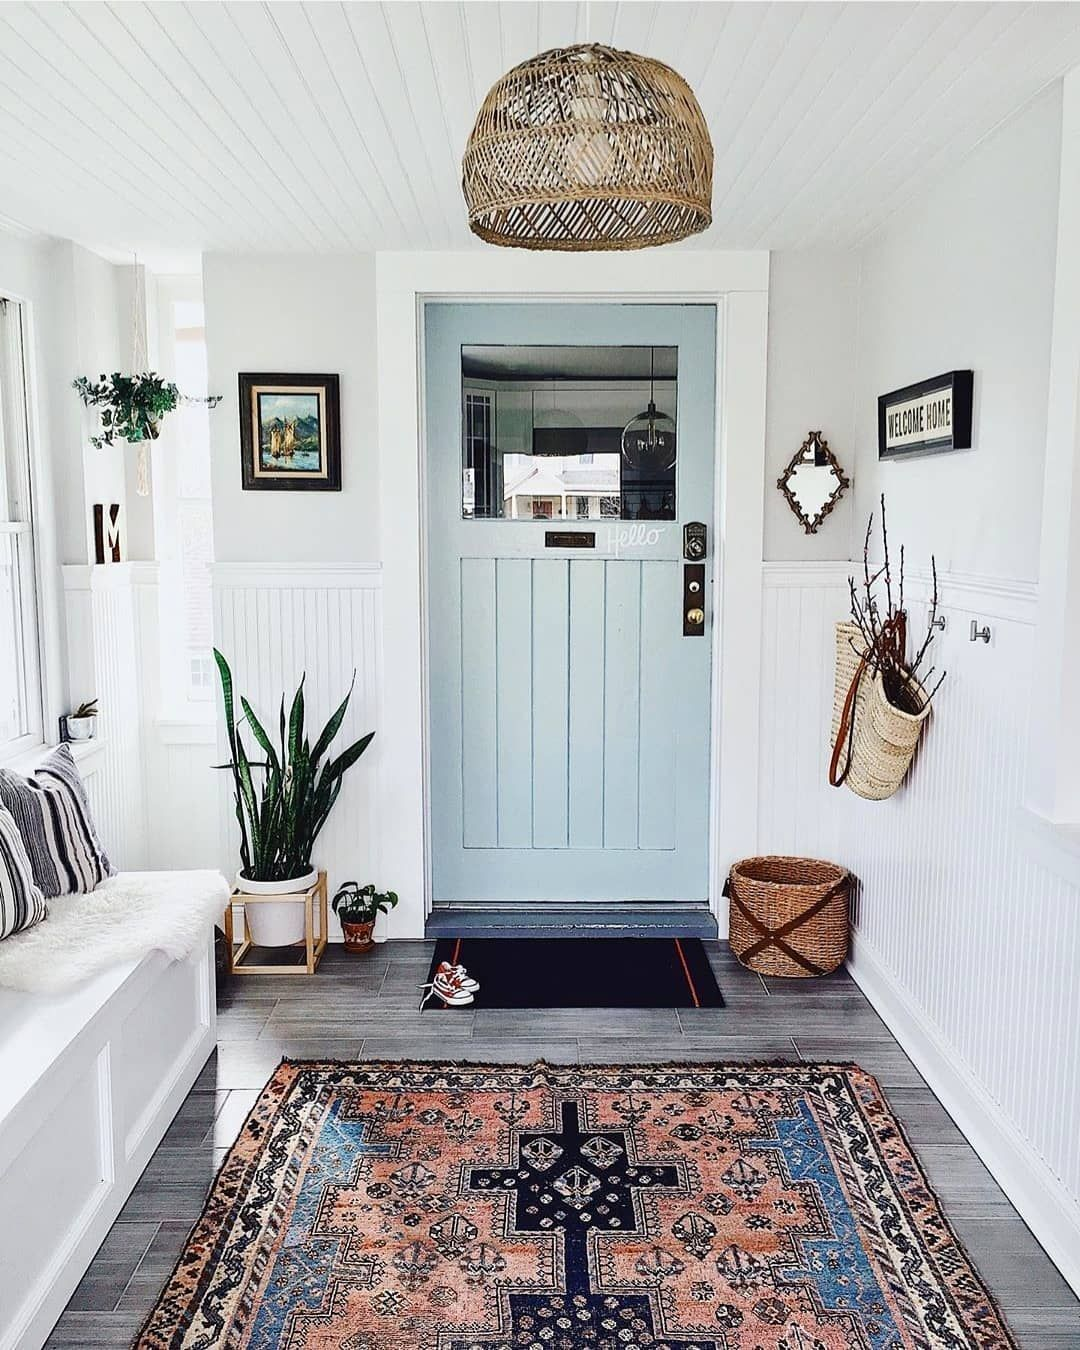 What a lovely looking entry way to your home! Double tap if you agree 😄🤗. [📷 credits to: @houseofsixinteriors] . . . . . #homedecoration #nordicdeco #hallway #homedecorinspiration #decorstyle #decorinspiration #nordicdecor #madeco #decolovers #simplehomestyle #dailydecordose #interiordecor #instadecoration #intetiorinspo #interiordeco #interiordecorator… Continue Reading → The post What a lovely looking entry way to your home! Double tap if you agree . [ credit… appeared fir